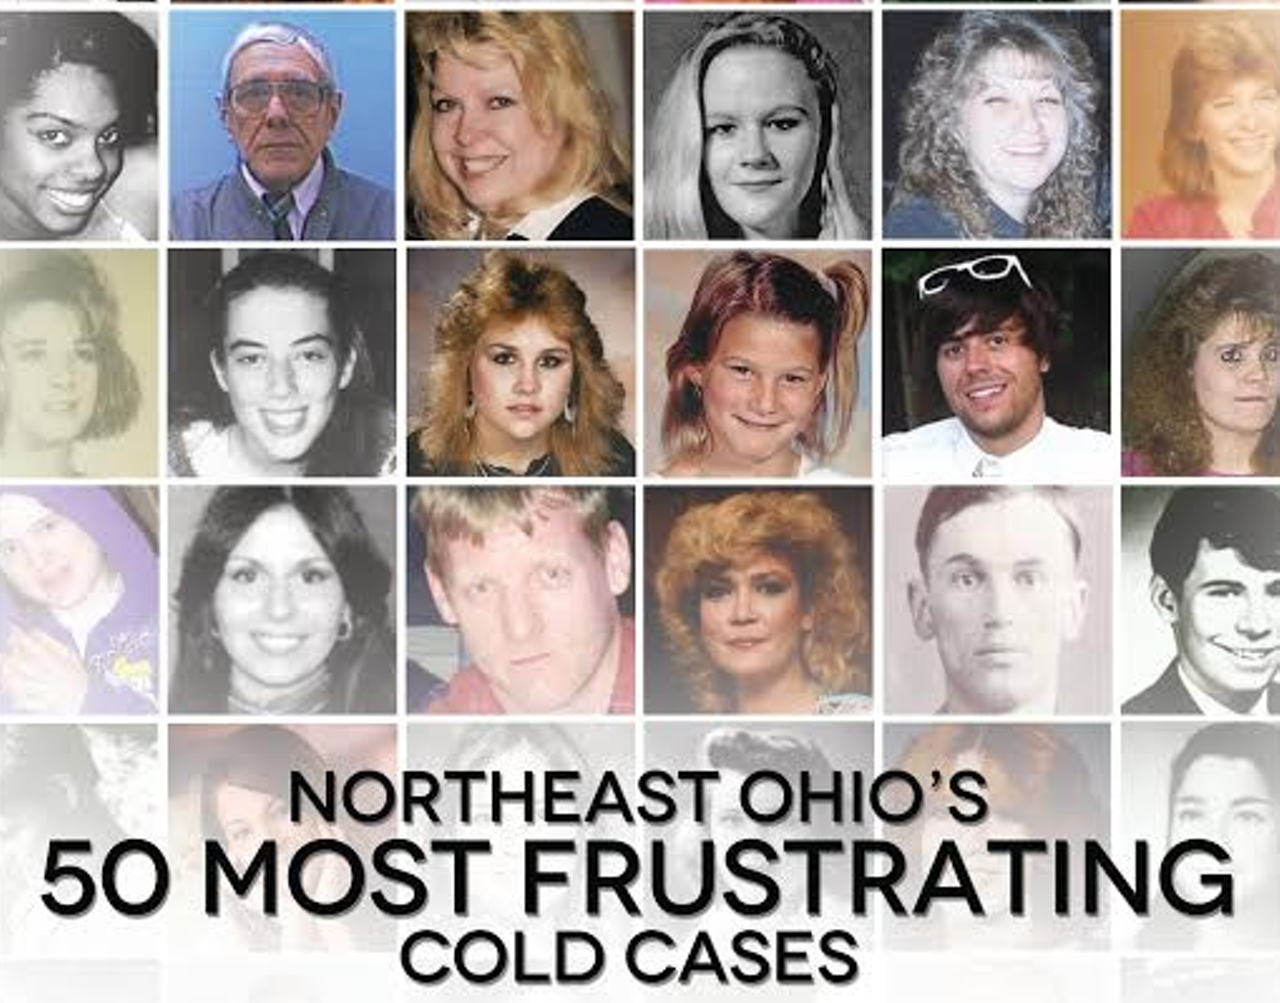 Northeast Ohio's 50 Most Frustrating Cold Cases | News Lead